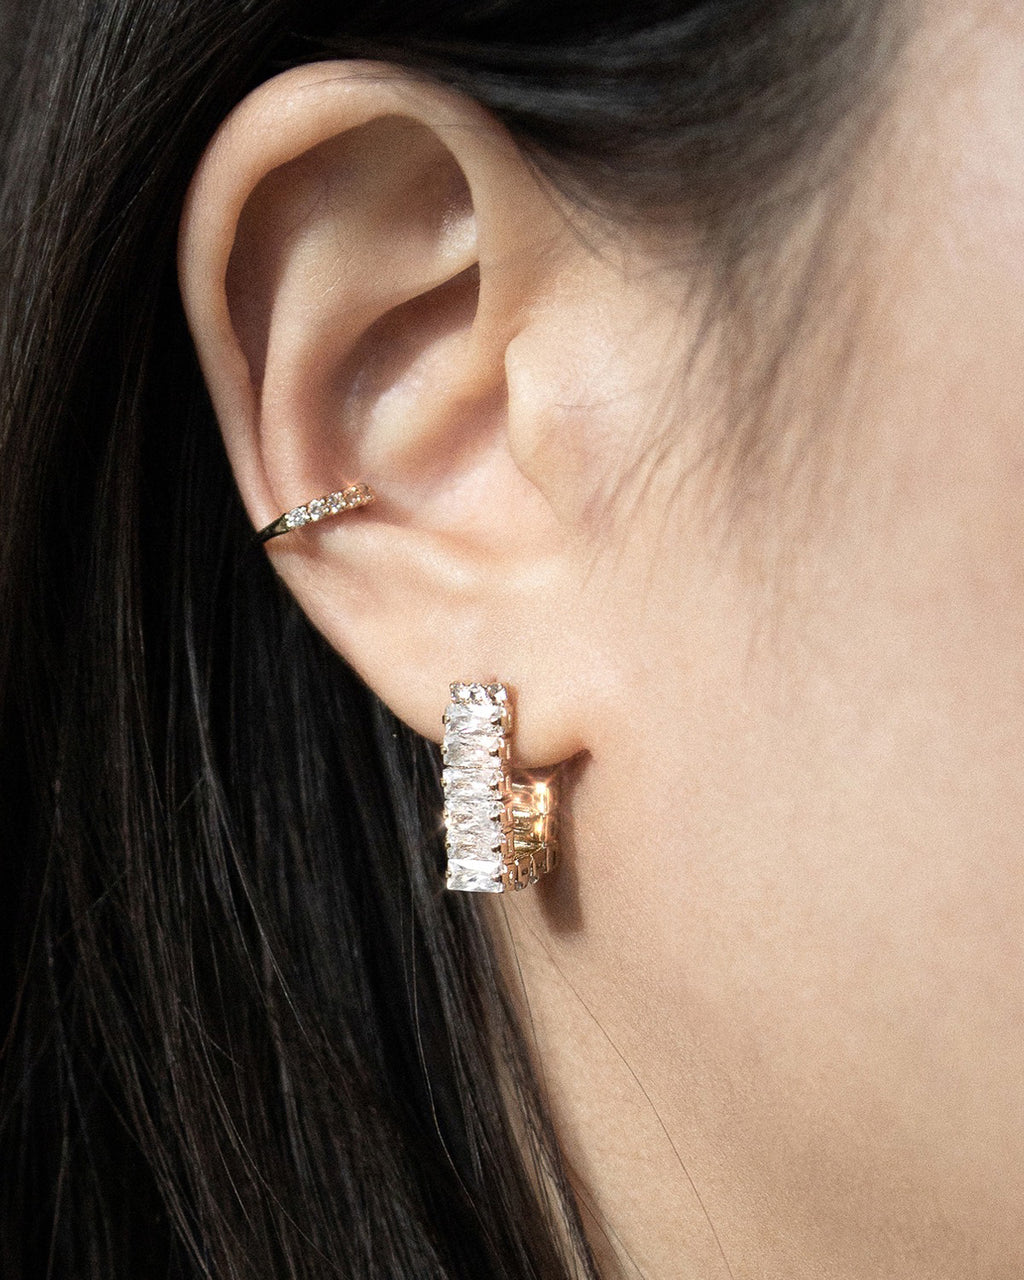 Add a touch of sparkle with the shiny Dazed earrings by The Hexad